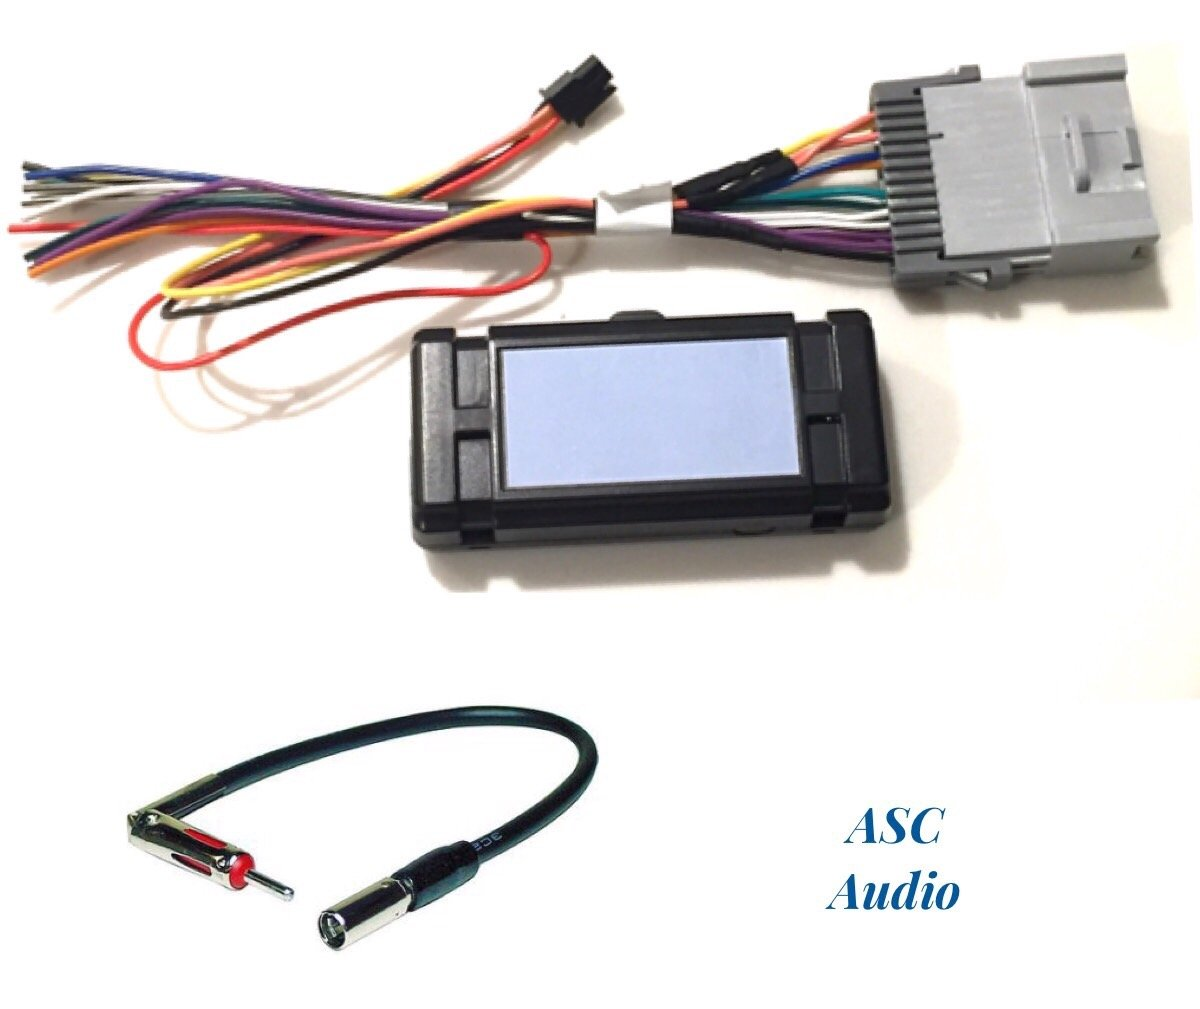 hight resolution of asc audio premuim car stereo radio wire harness and antenna adapter for some gm chevrolet 03 06 silverado tahoe suburban sierra etc